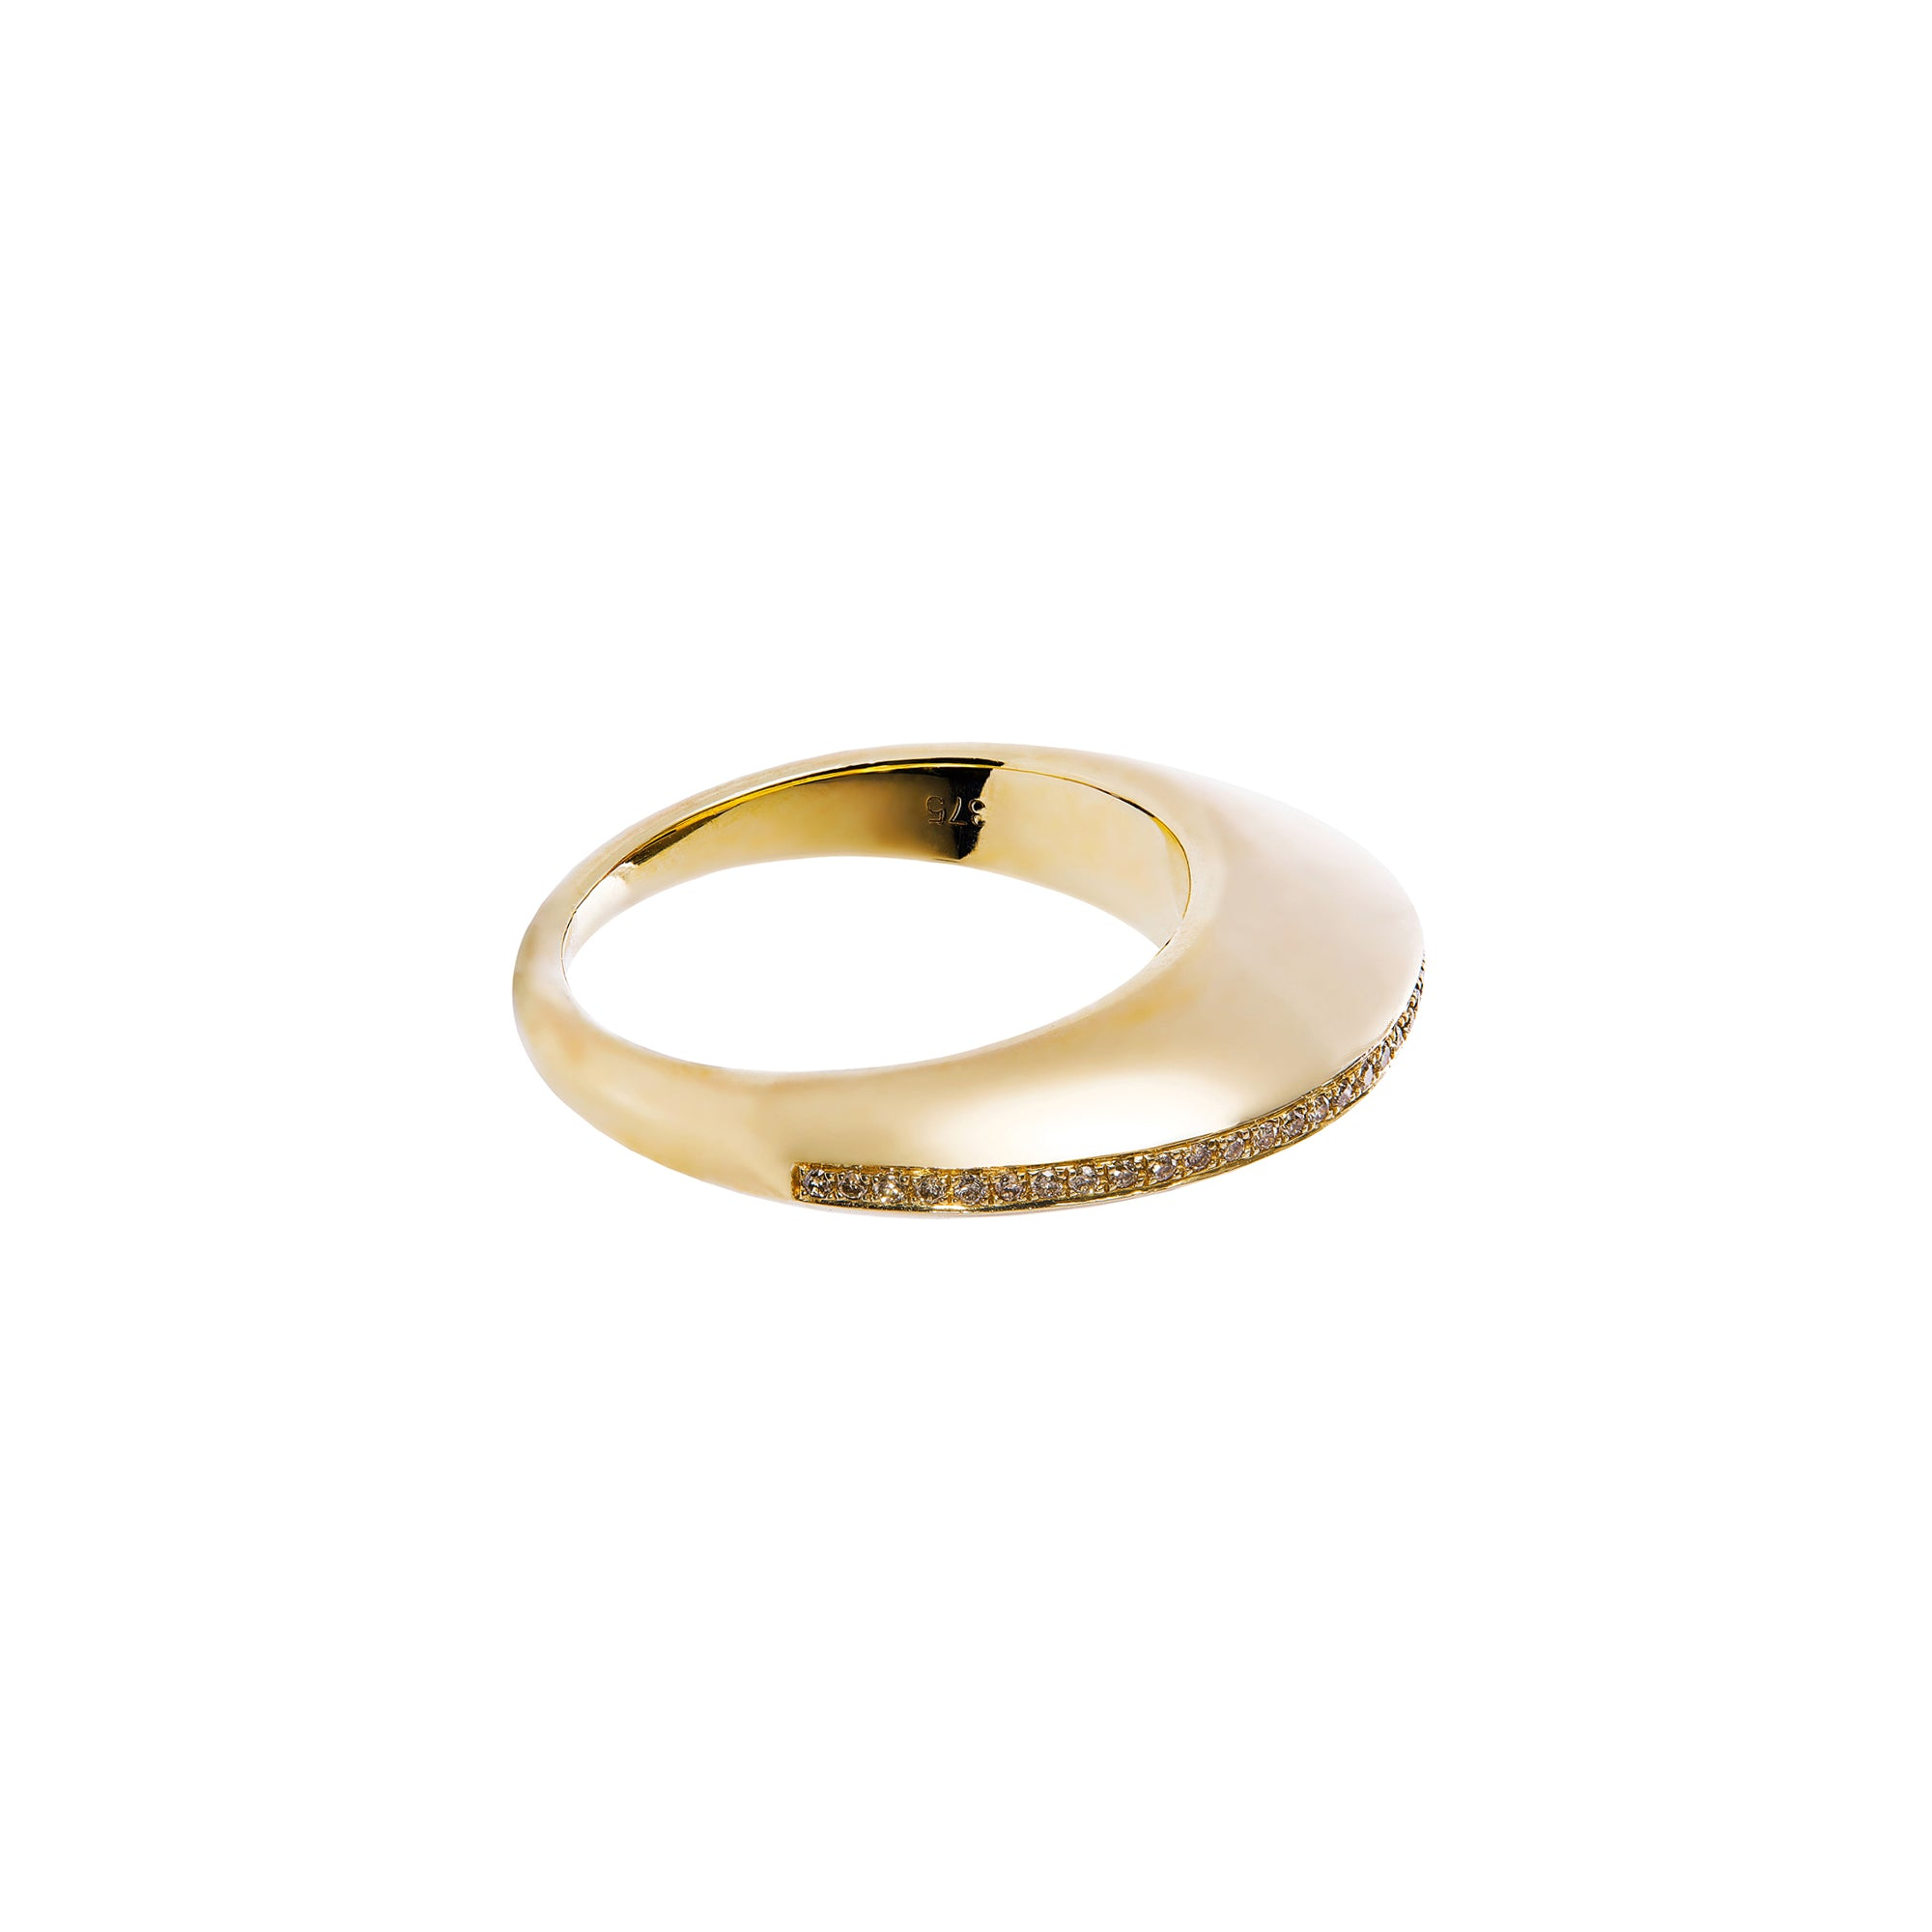 By Pariah Gold Linings - Rings - Broken English Jewelry